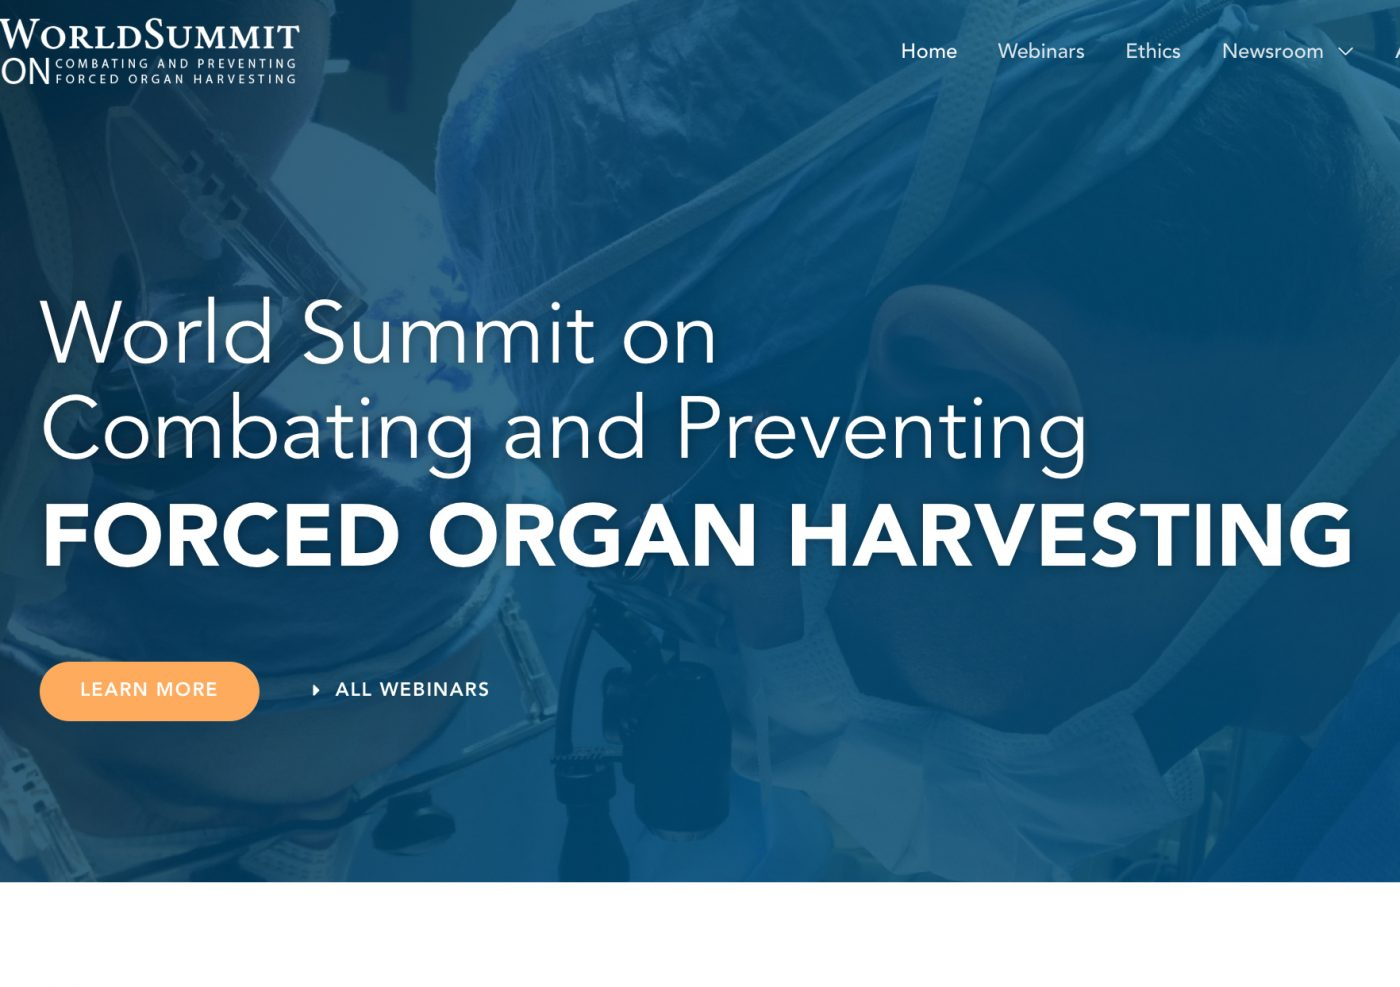 World Summit on Combating and Preventing Forced Organ Harvesting